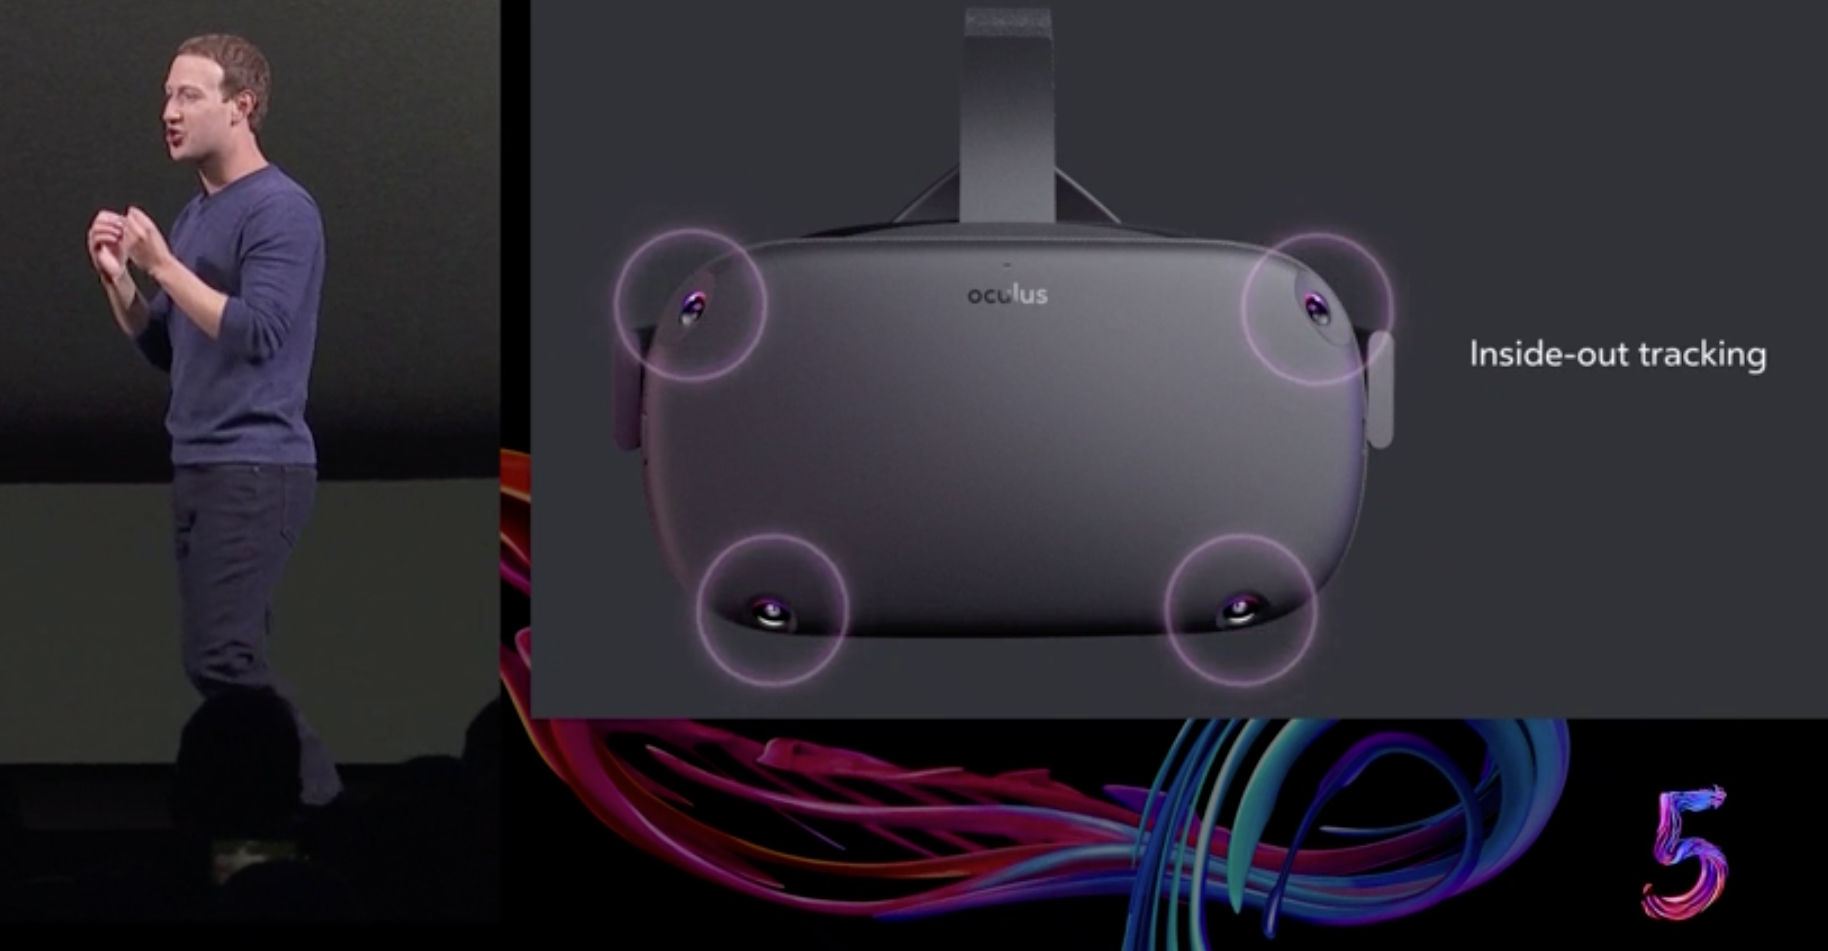 Facebook Launches Oculus Quest, a New All-in-One VR System for $399 1 | Digital Marketing Community